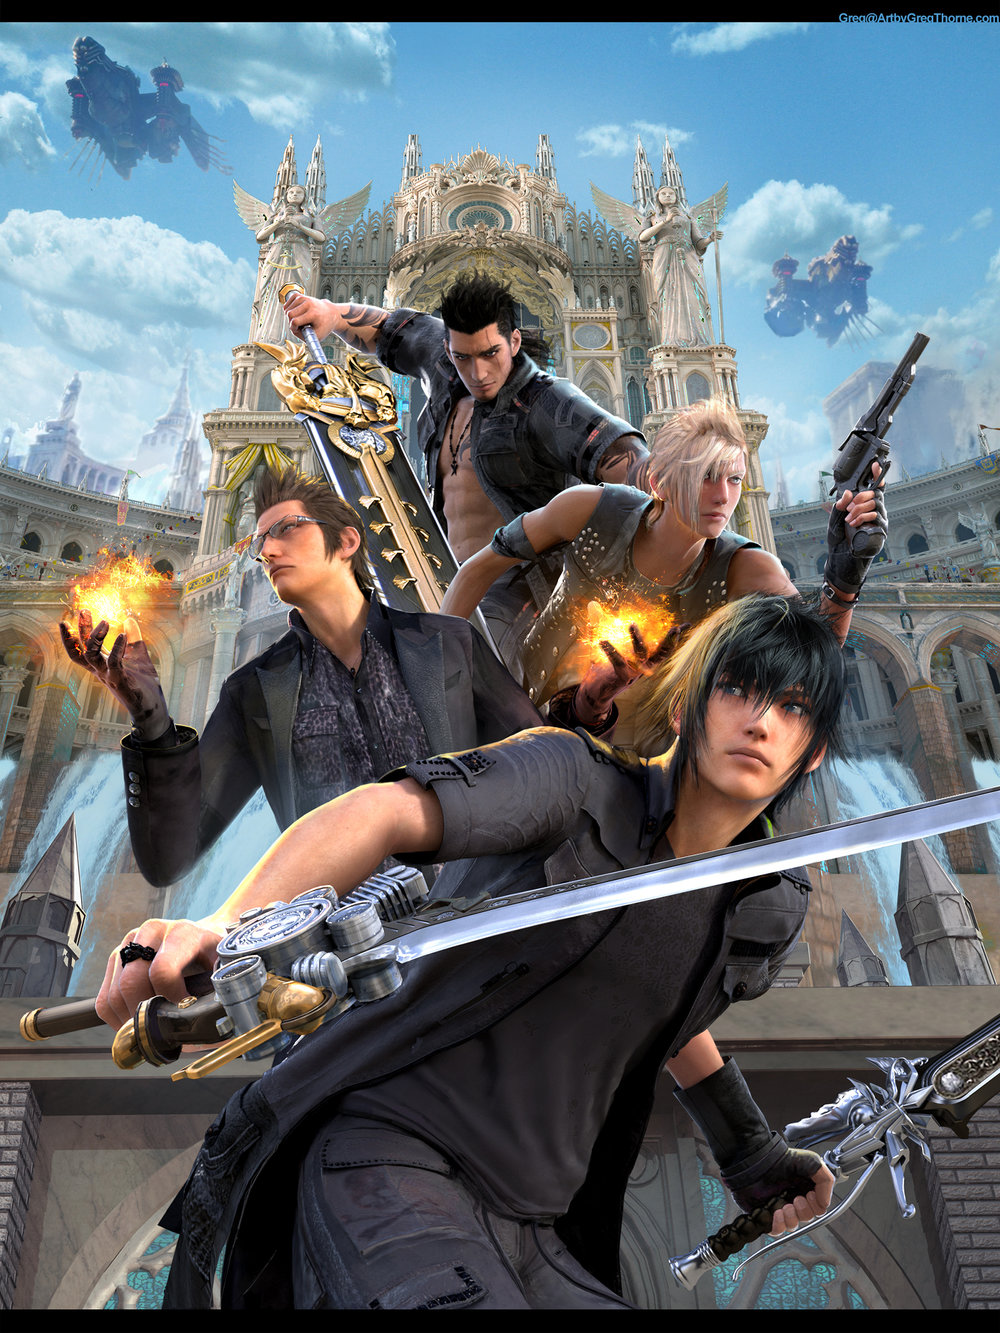 FFXVANE-Splash_by_GregThorne.jpg